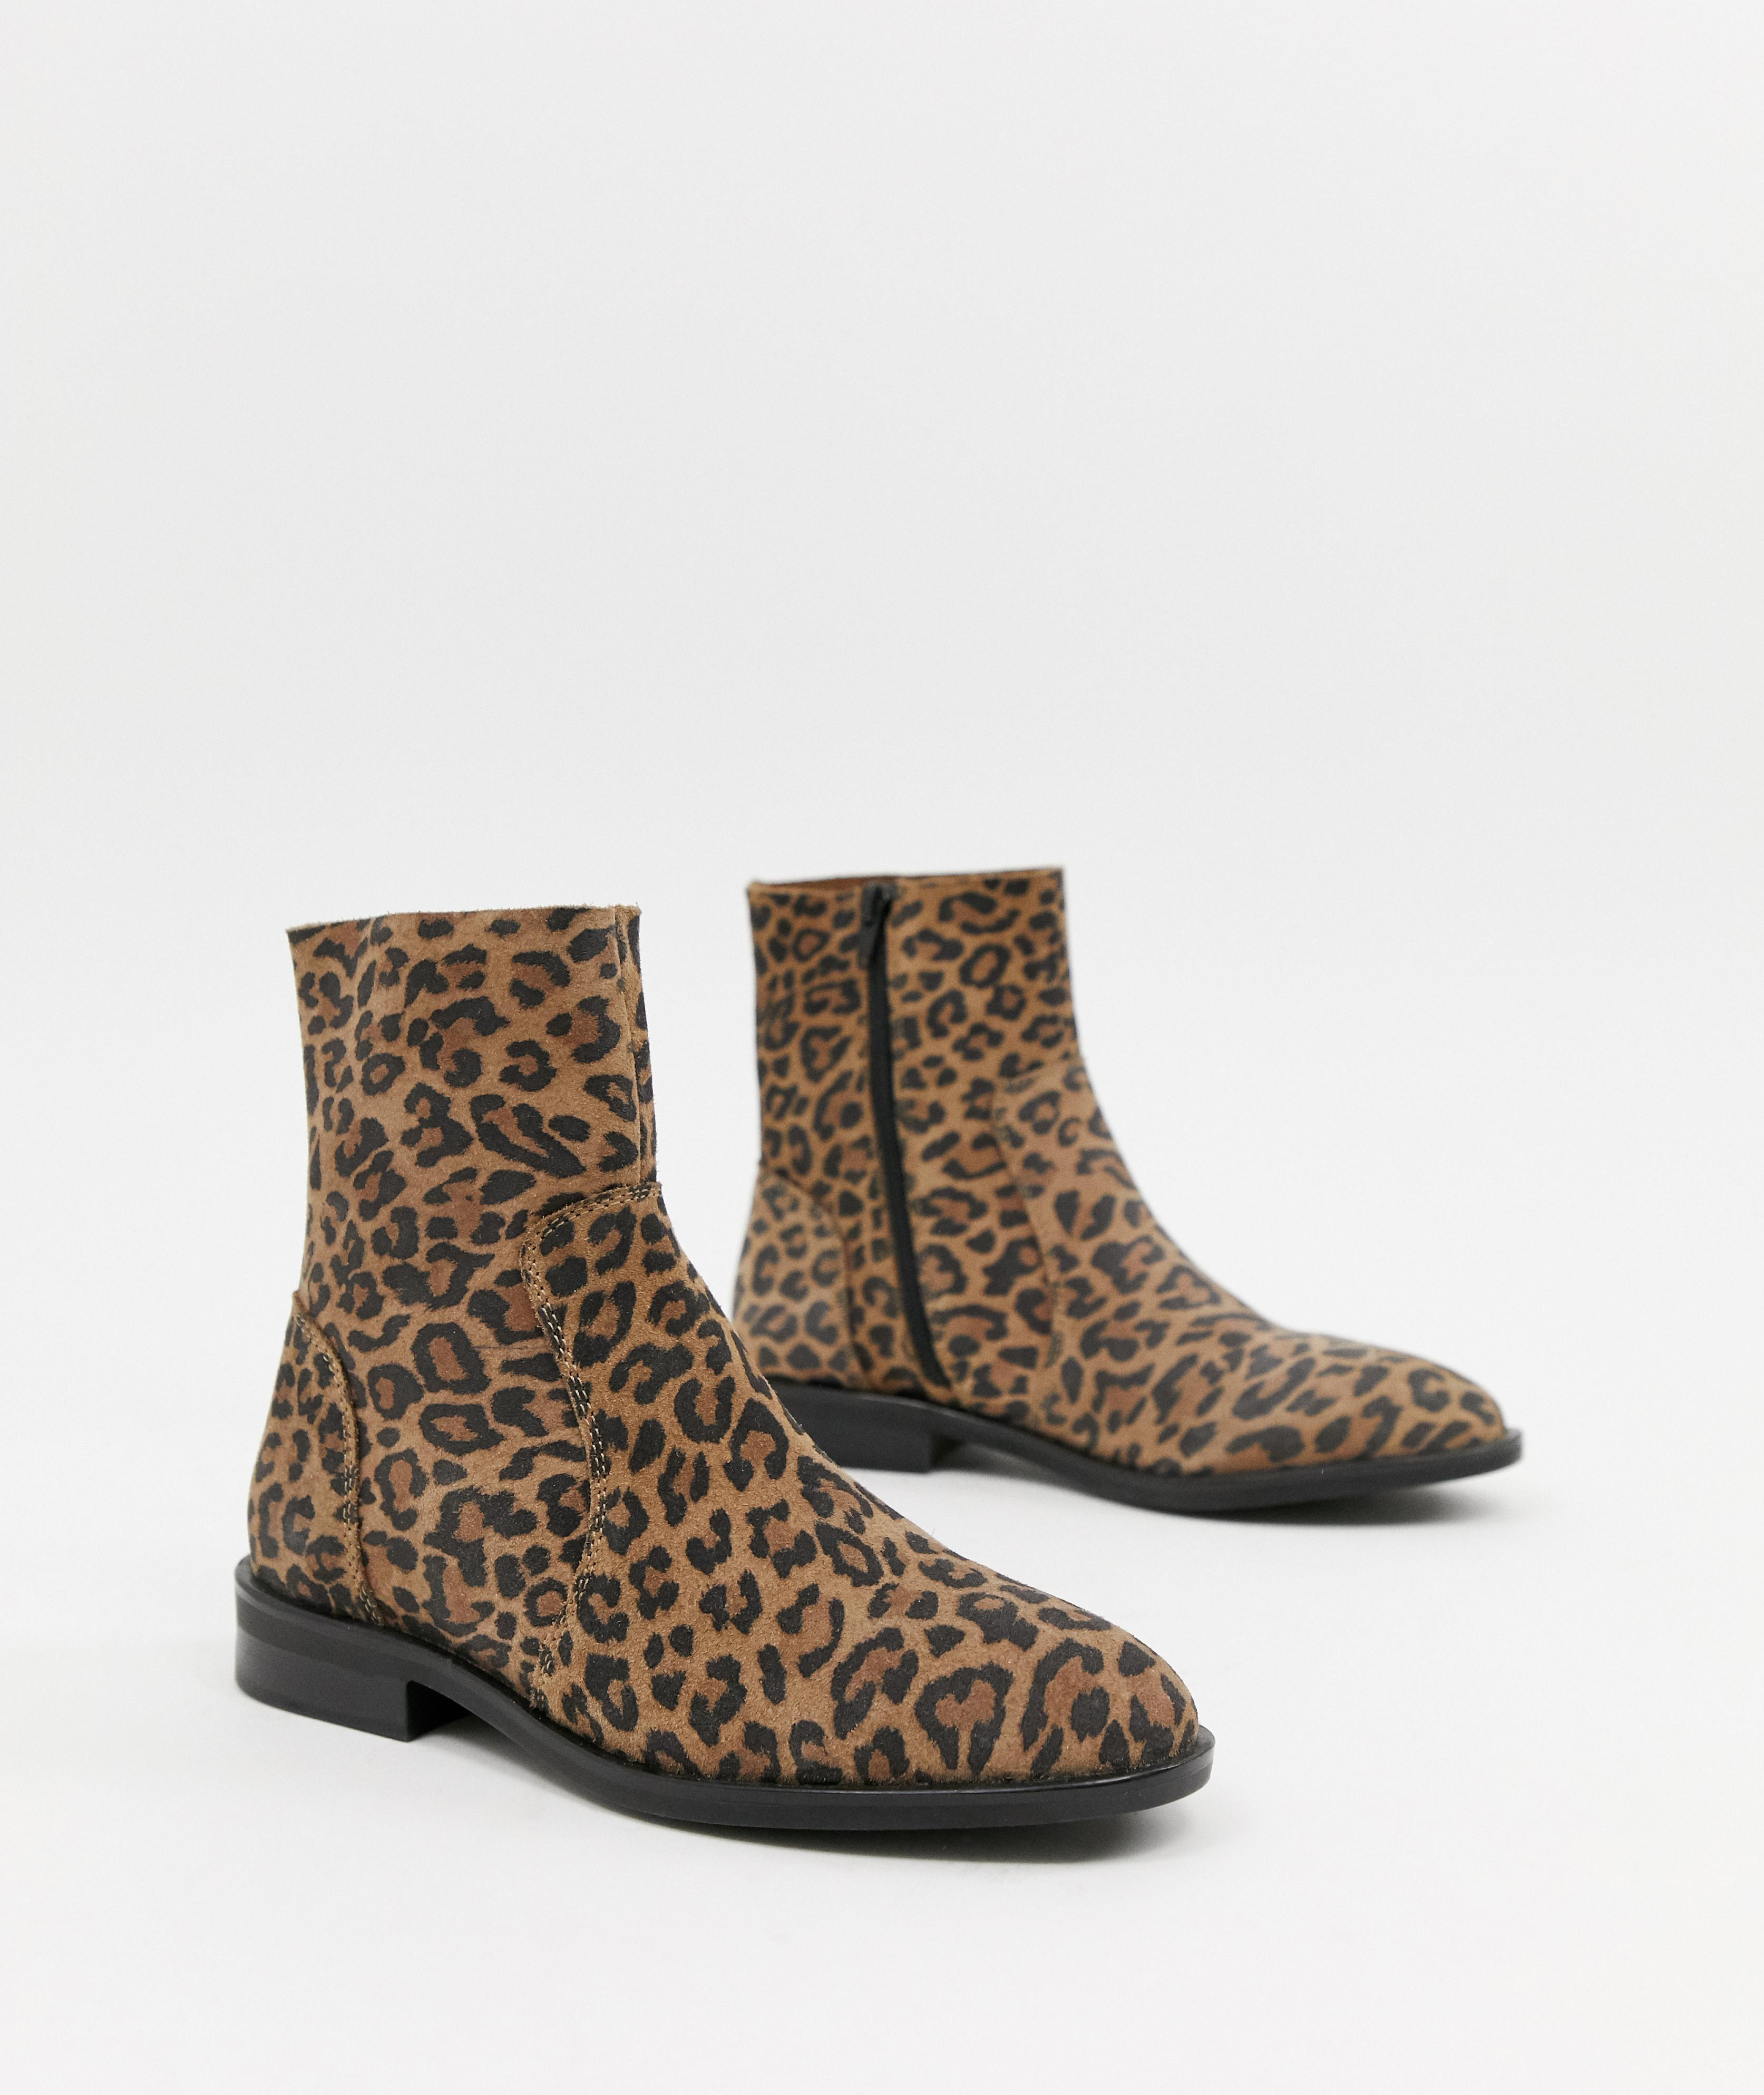 2ab2ecf9f409 Cute Leopard Print Boots & Booties For Winter 2019